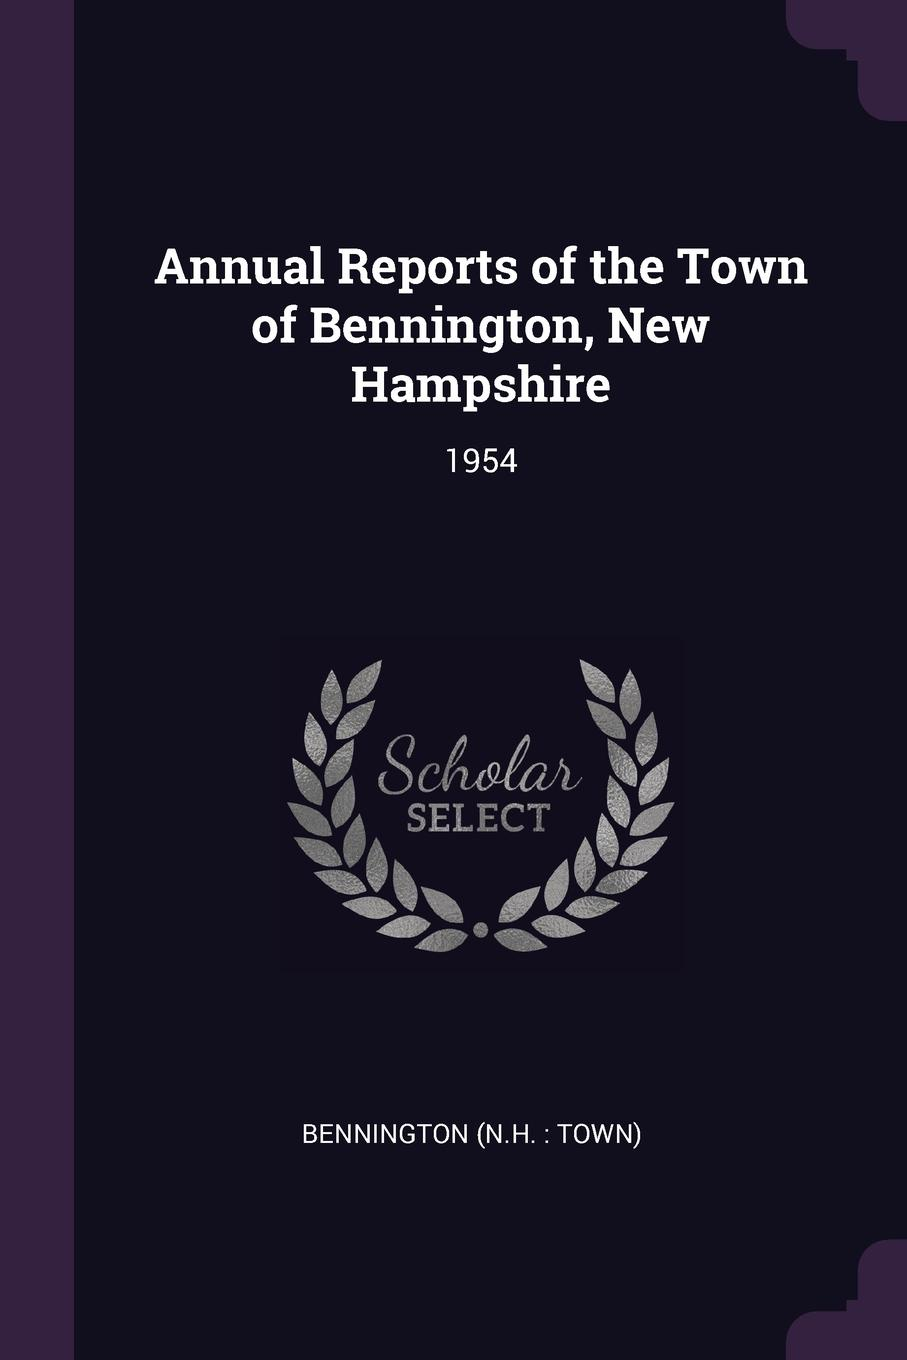 Annual Reports of the Town of Bennington, New Hampshire. 1954